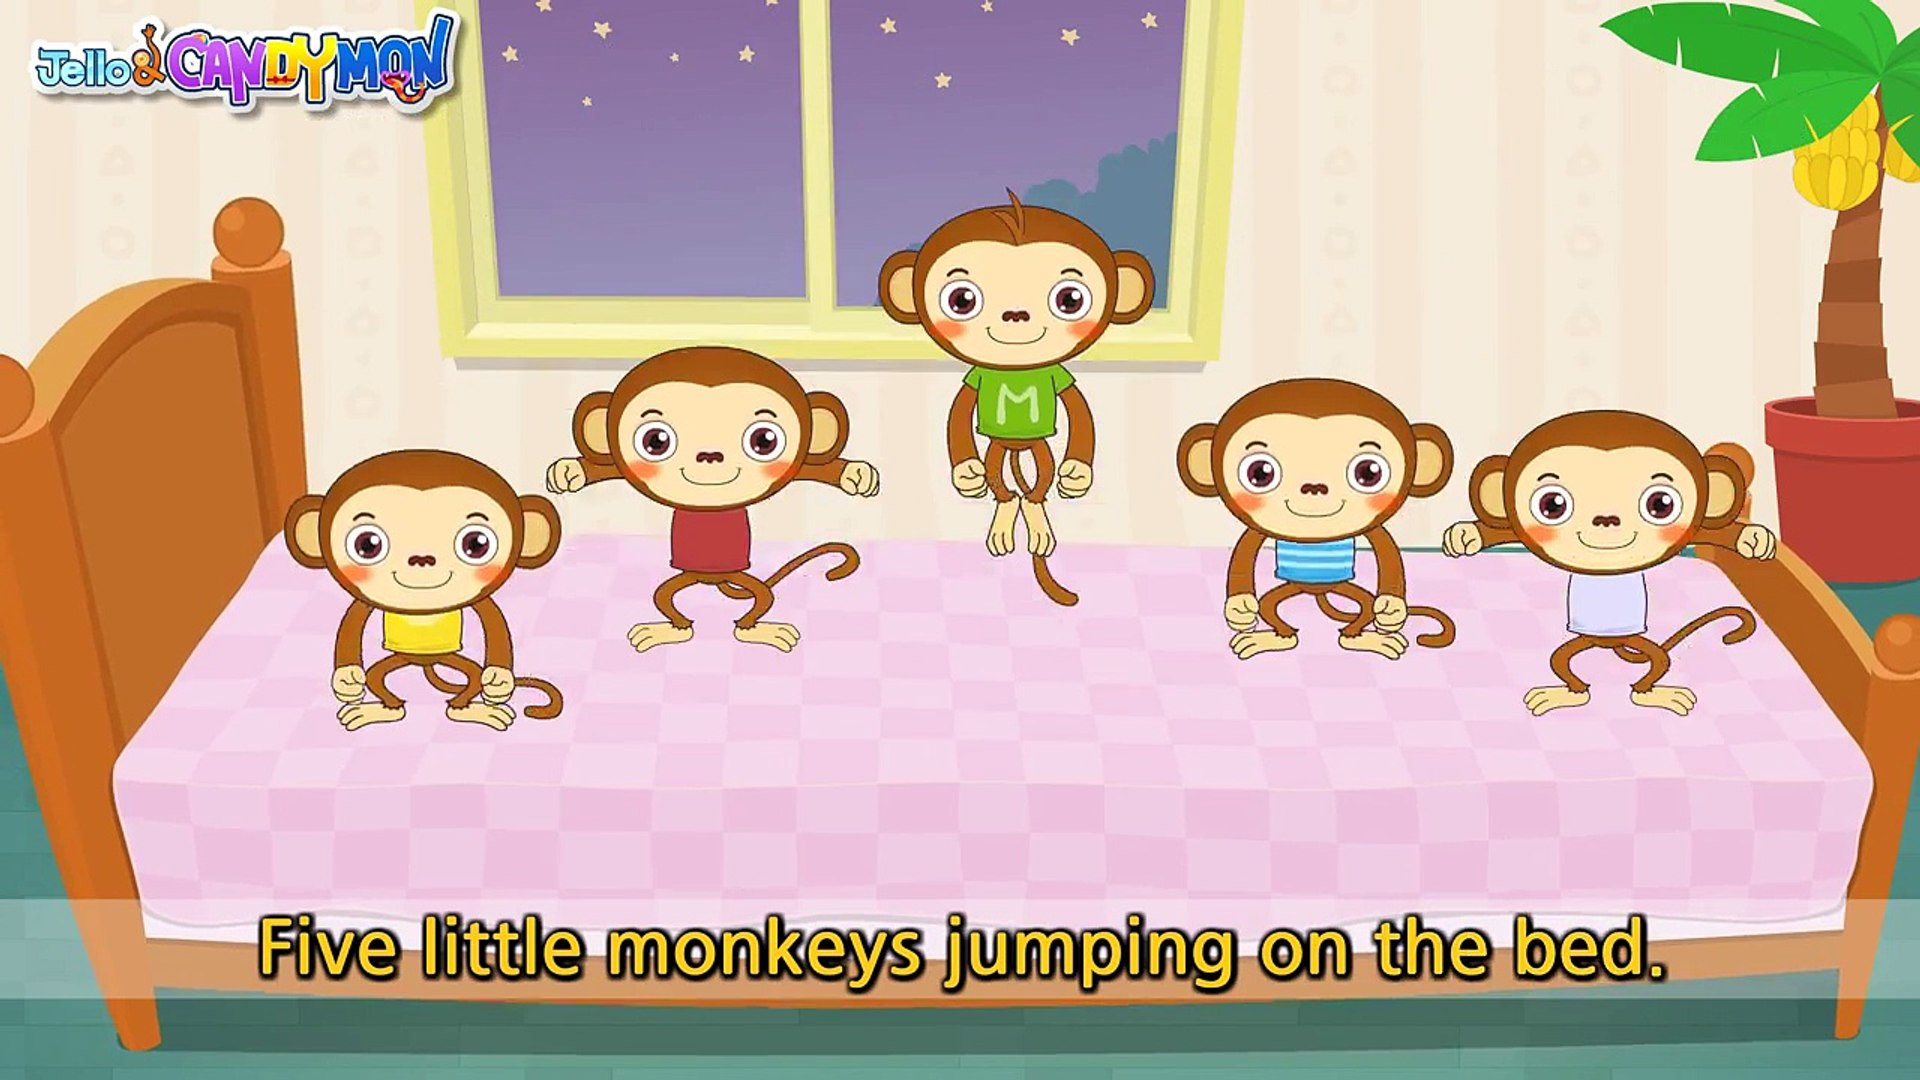 Five Little Monkeys Jumping On The Bed Nursery Popular Rhymes English Song For Kids Music Video Dailymotion